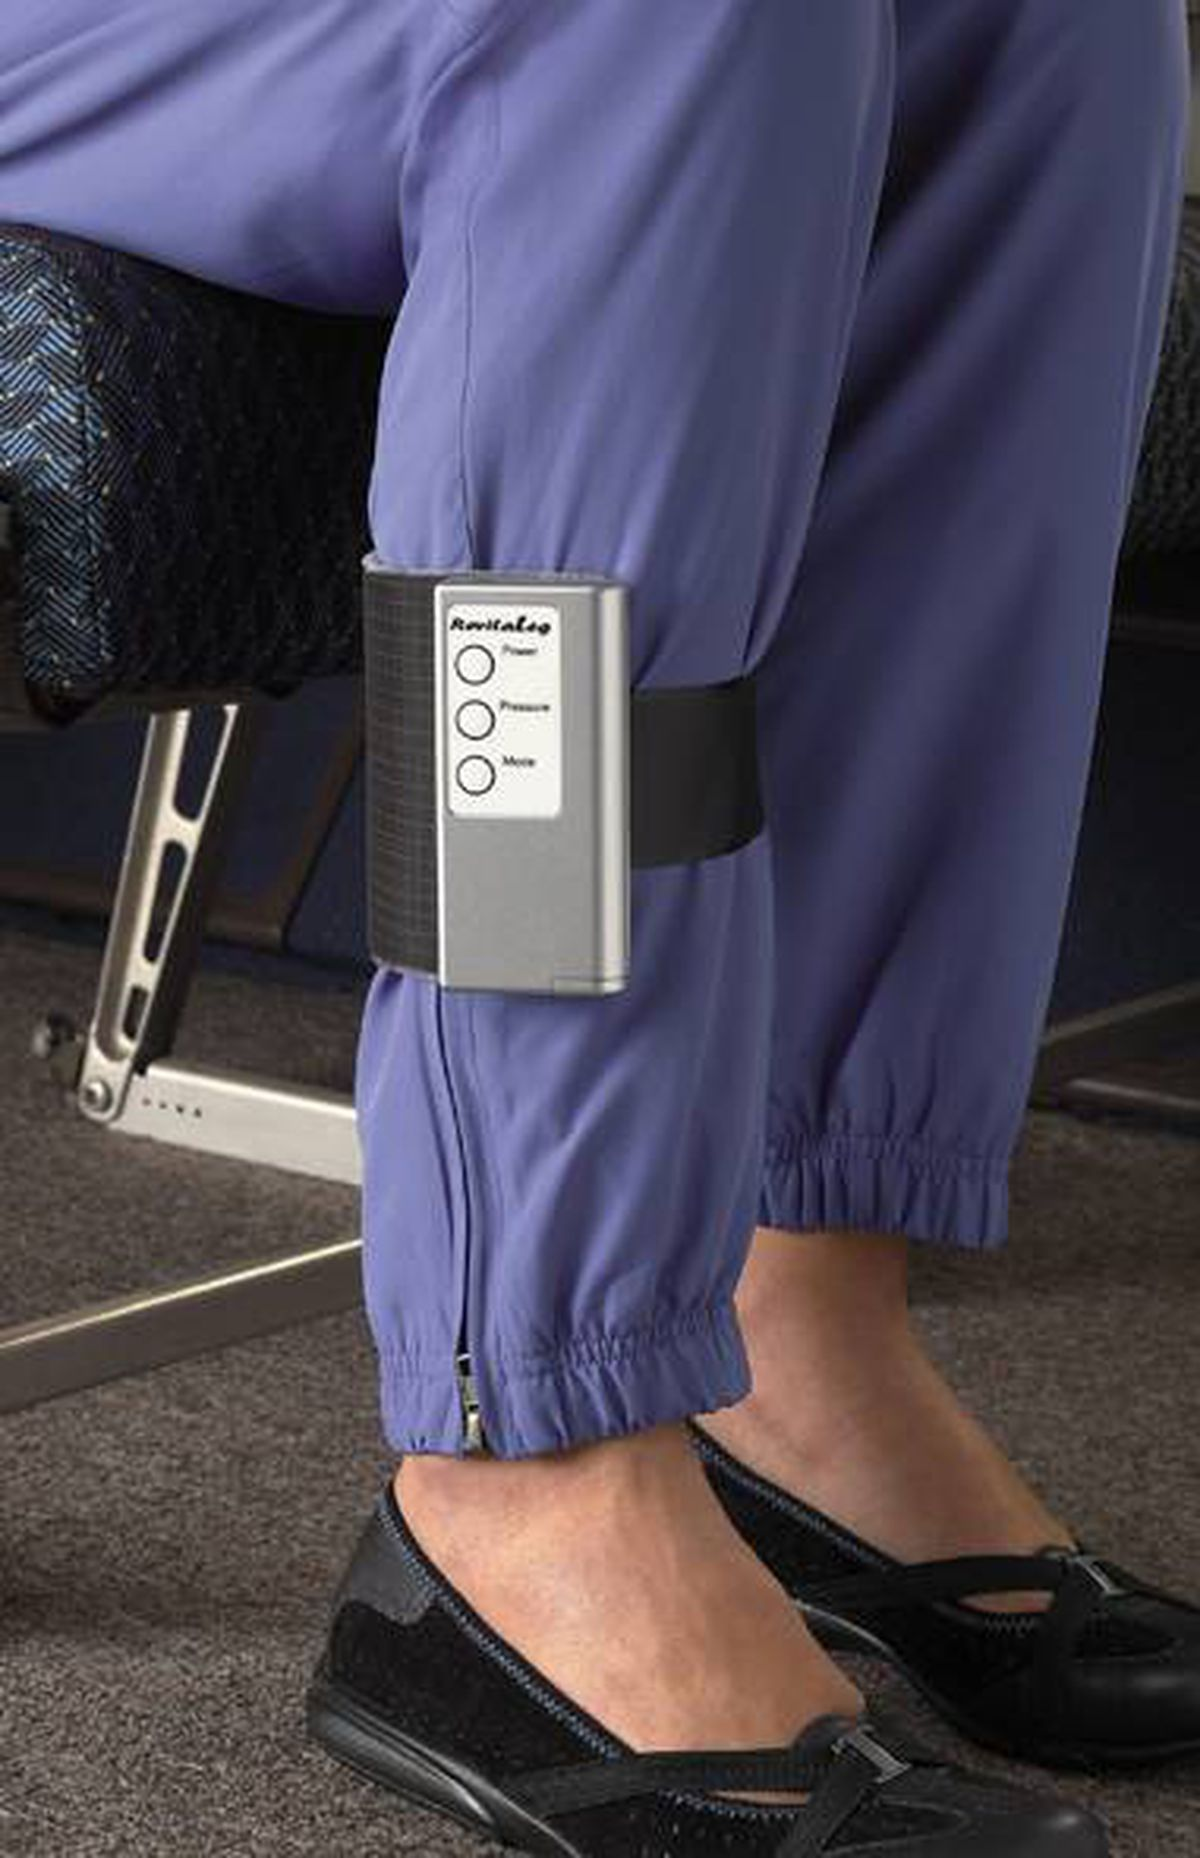 Massage it Keeping the circulation flowing on long-haul flights isn't always easy. Strap the Revita-Leg around your calf and guard against leg cramps and deep-vein thrombosis without leaving your seat. The battery-powered portable leg massager has multiple pressure settings and massage modes and automatically operates for 10 minutes at a time, so you can give equal attention to each leg. $149; magellans.com